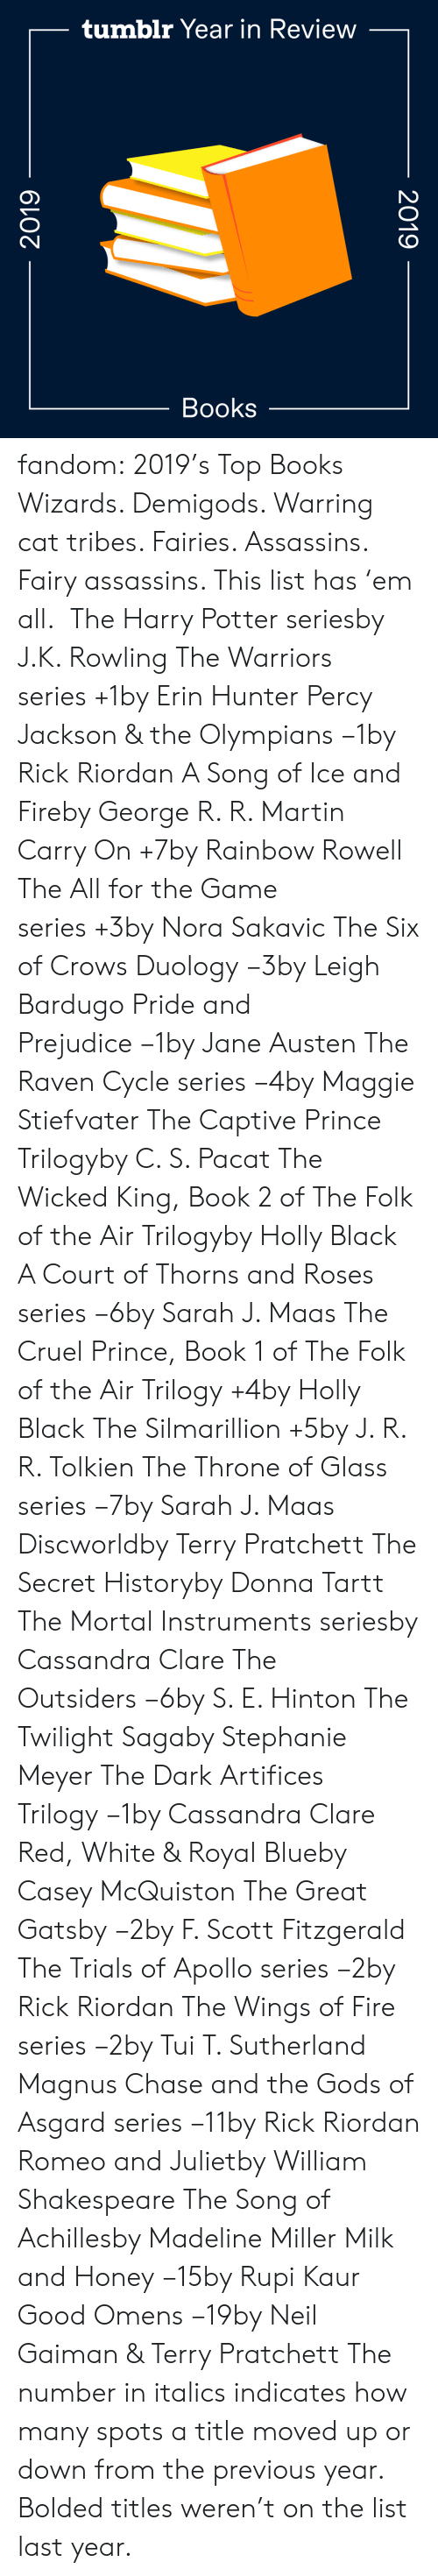 the warriors: tumblr Year in Review  Books  2019  2019 fandom:  2019's Top Books  Wizards. Demigods. Warring cat tribes. Fairies. Assassins. Fairy assassins. This list has 'em all.   The Harry Potter seriesby J.K. Rowling  The Warriors series +1by Erin Hunter  Percy Jackson & the Olympians −1by Rick Riordan  A Song of Ice and Fireby George R. R. Martin  Carry On +7by Rainbow Rowell  The All for the Game series +3by Nora Sakavic  The Six of Crows Duology −3by Leigh Bardugo  Pride and Prejudice −1by Jane Austen  The Raven Cycle series −4by Maggie Stiefvater  The Captive Prince Trilogyby C. S. Pacat  The Wicked King, Book 2 of The Folk of the Air Trilogyby Holly Black  A Court of Thorns and Roses series −6by Sarah J. Maas  The Cruel Prince, Book 1 of The Folk of the Air Trilogy +4by Holly Black  The Silmarillion +5by J. R. R. Tolkien  The Throne of Glass series −7by Sarah J. Maas  Discworldby Terry Pratchett  The Secret Historyby Donna Tartt  The Mortal Instruments seriesby Cassandra Clare  The Outsiders −6by S. E. Hinton  The Twilight Sagaby Stephanie Meyer  The Dark Artifices Trilogy −1by Cassandra Clare  Red, White & Royal Blueby Casey McQuiston  The Great Gatsby −2by F. Scott Fitzgerald  The Trials of Apollo series −2by Rick Riordan  The Wings of Fire series −2by Tui T. Sutherland  Magnus Chase and the Gods of Asgard series −11by Rick Riordan  Romeo and Julietby William Shakespeare  The Song of Achillesby Madeline Miller  Milk and Honey −15by Rupi Kaur  Good Omens −19by Neil Gaiman & Terry Pratchett The number in italics indicates how many spots a title moved up or down from the previous year. Bolded titles weren't on the list last year.